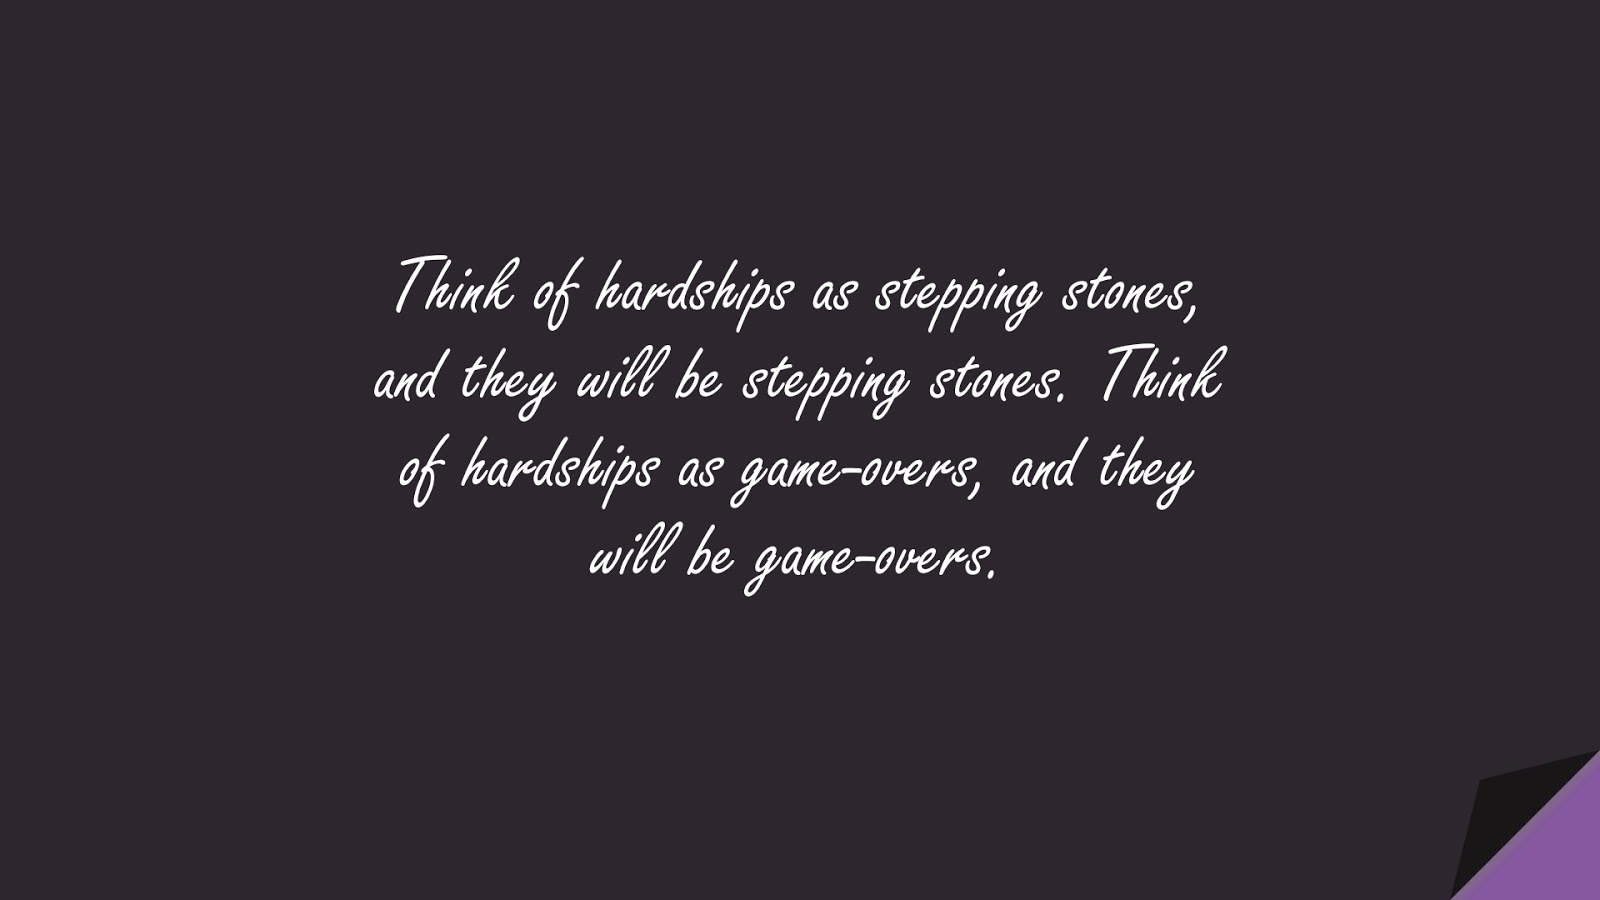 Think of hardships as stepping stones, and they will be stepping stones. Think of hardships as game-overs, and they will be game-overs.FALSE